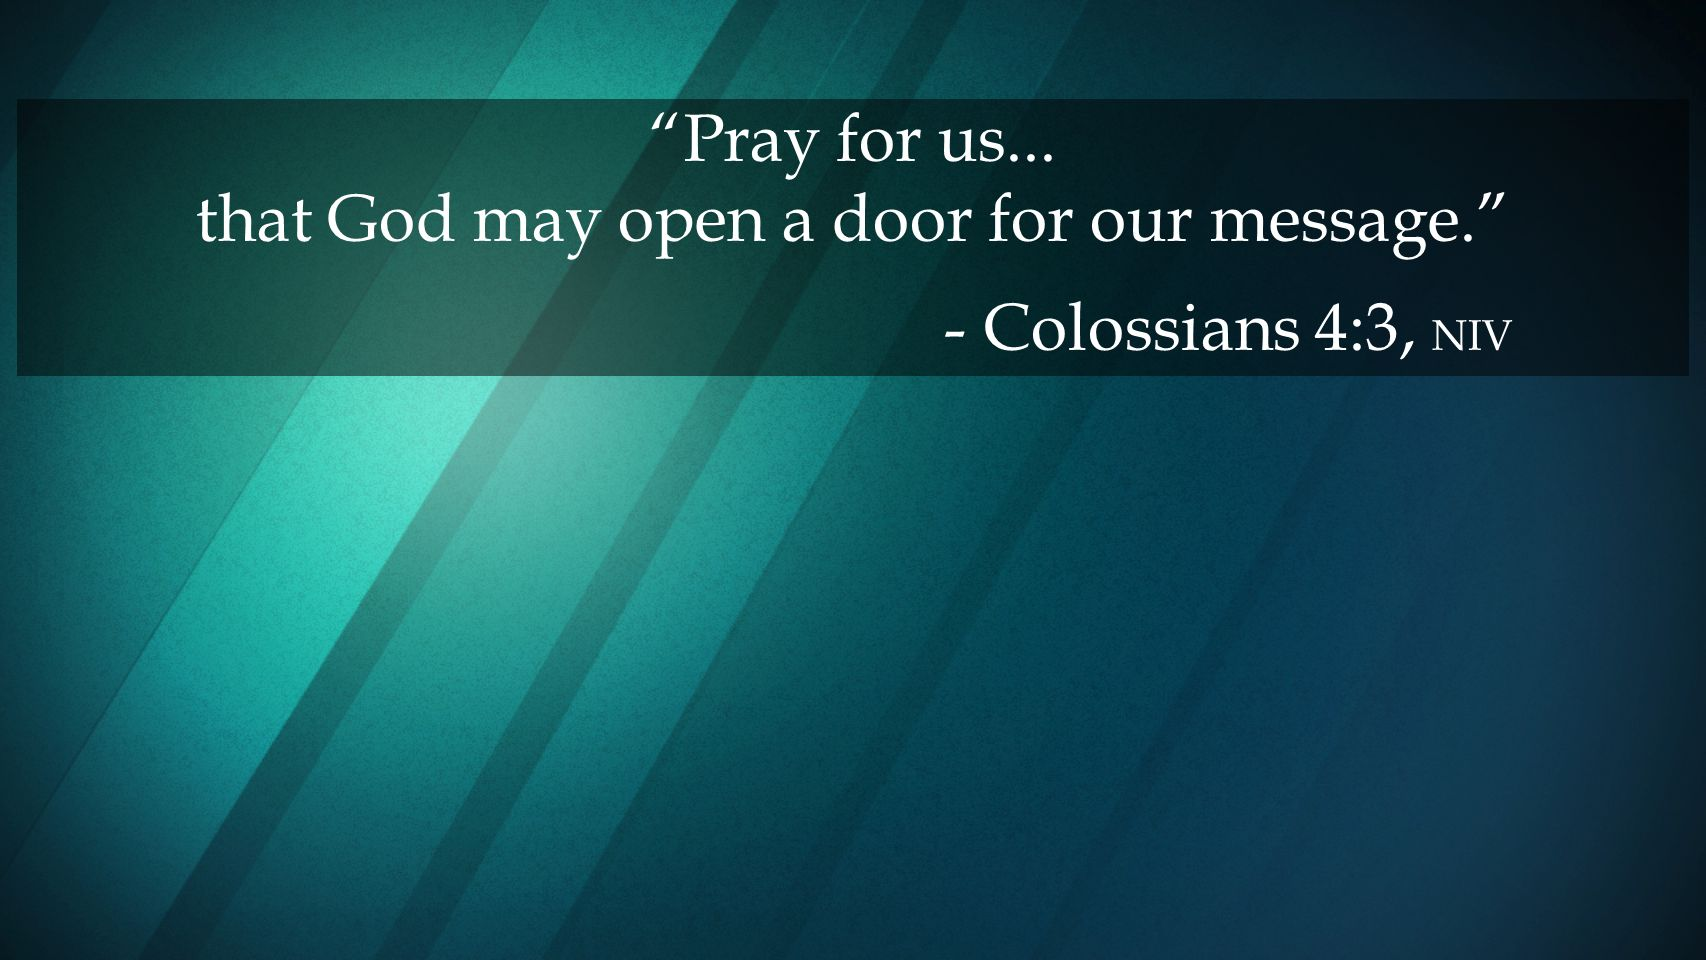 Pray for us... that God may open a door for our message.